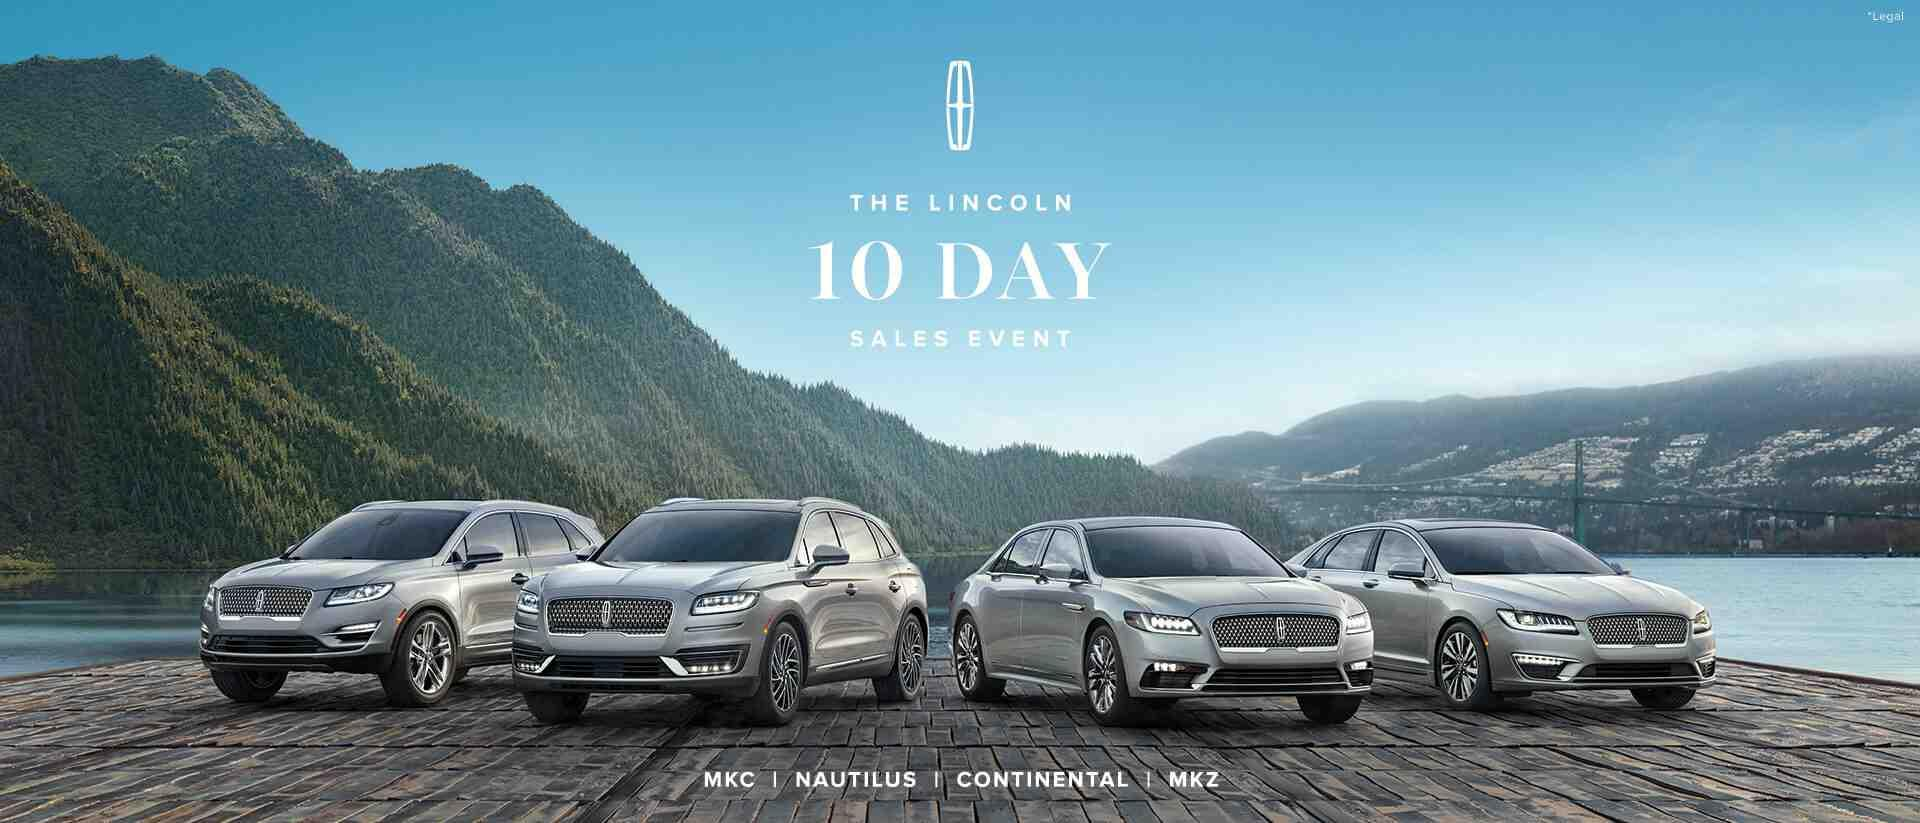 Lincoln 10 Day Sale Event